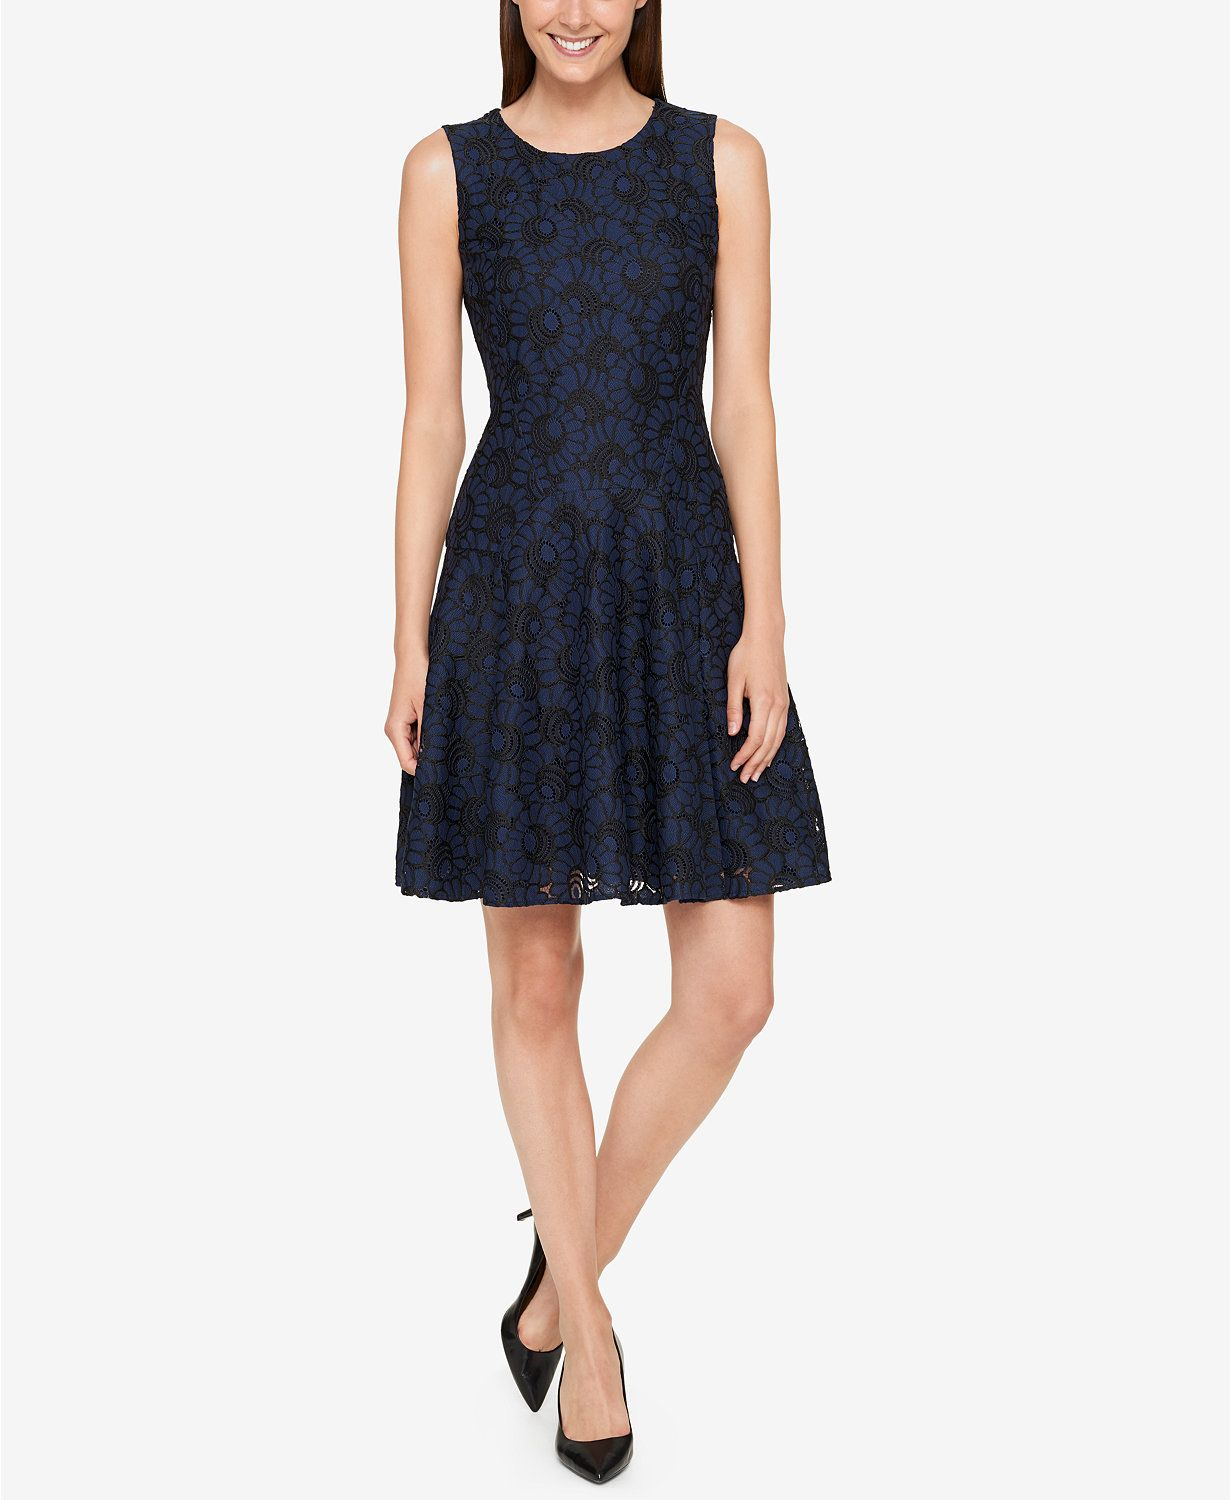 Tommy Hilfiger Lace Fit & Flare Dress | macys.com | dresses ...